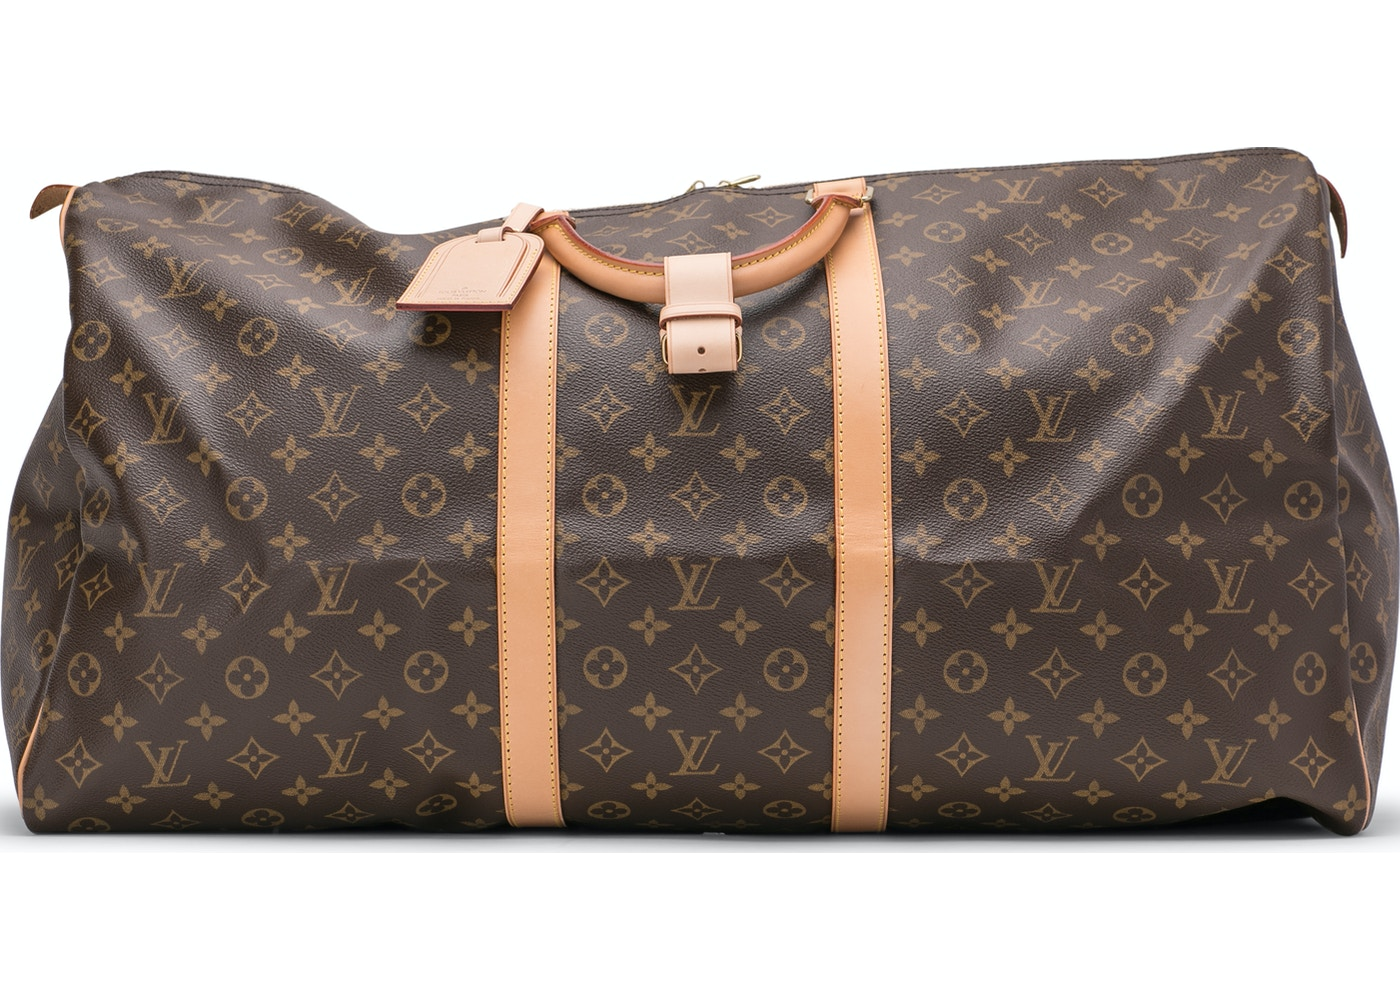 Louis Vuitton Keepall (With Accessories) Monogram 60 Brown. Monogram 60  Brown d2eafd6e043f9